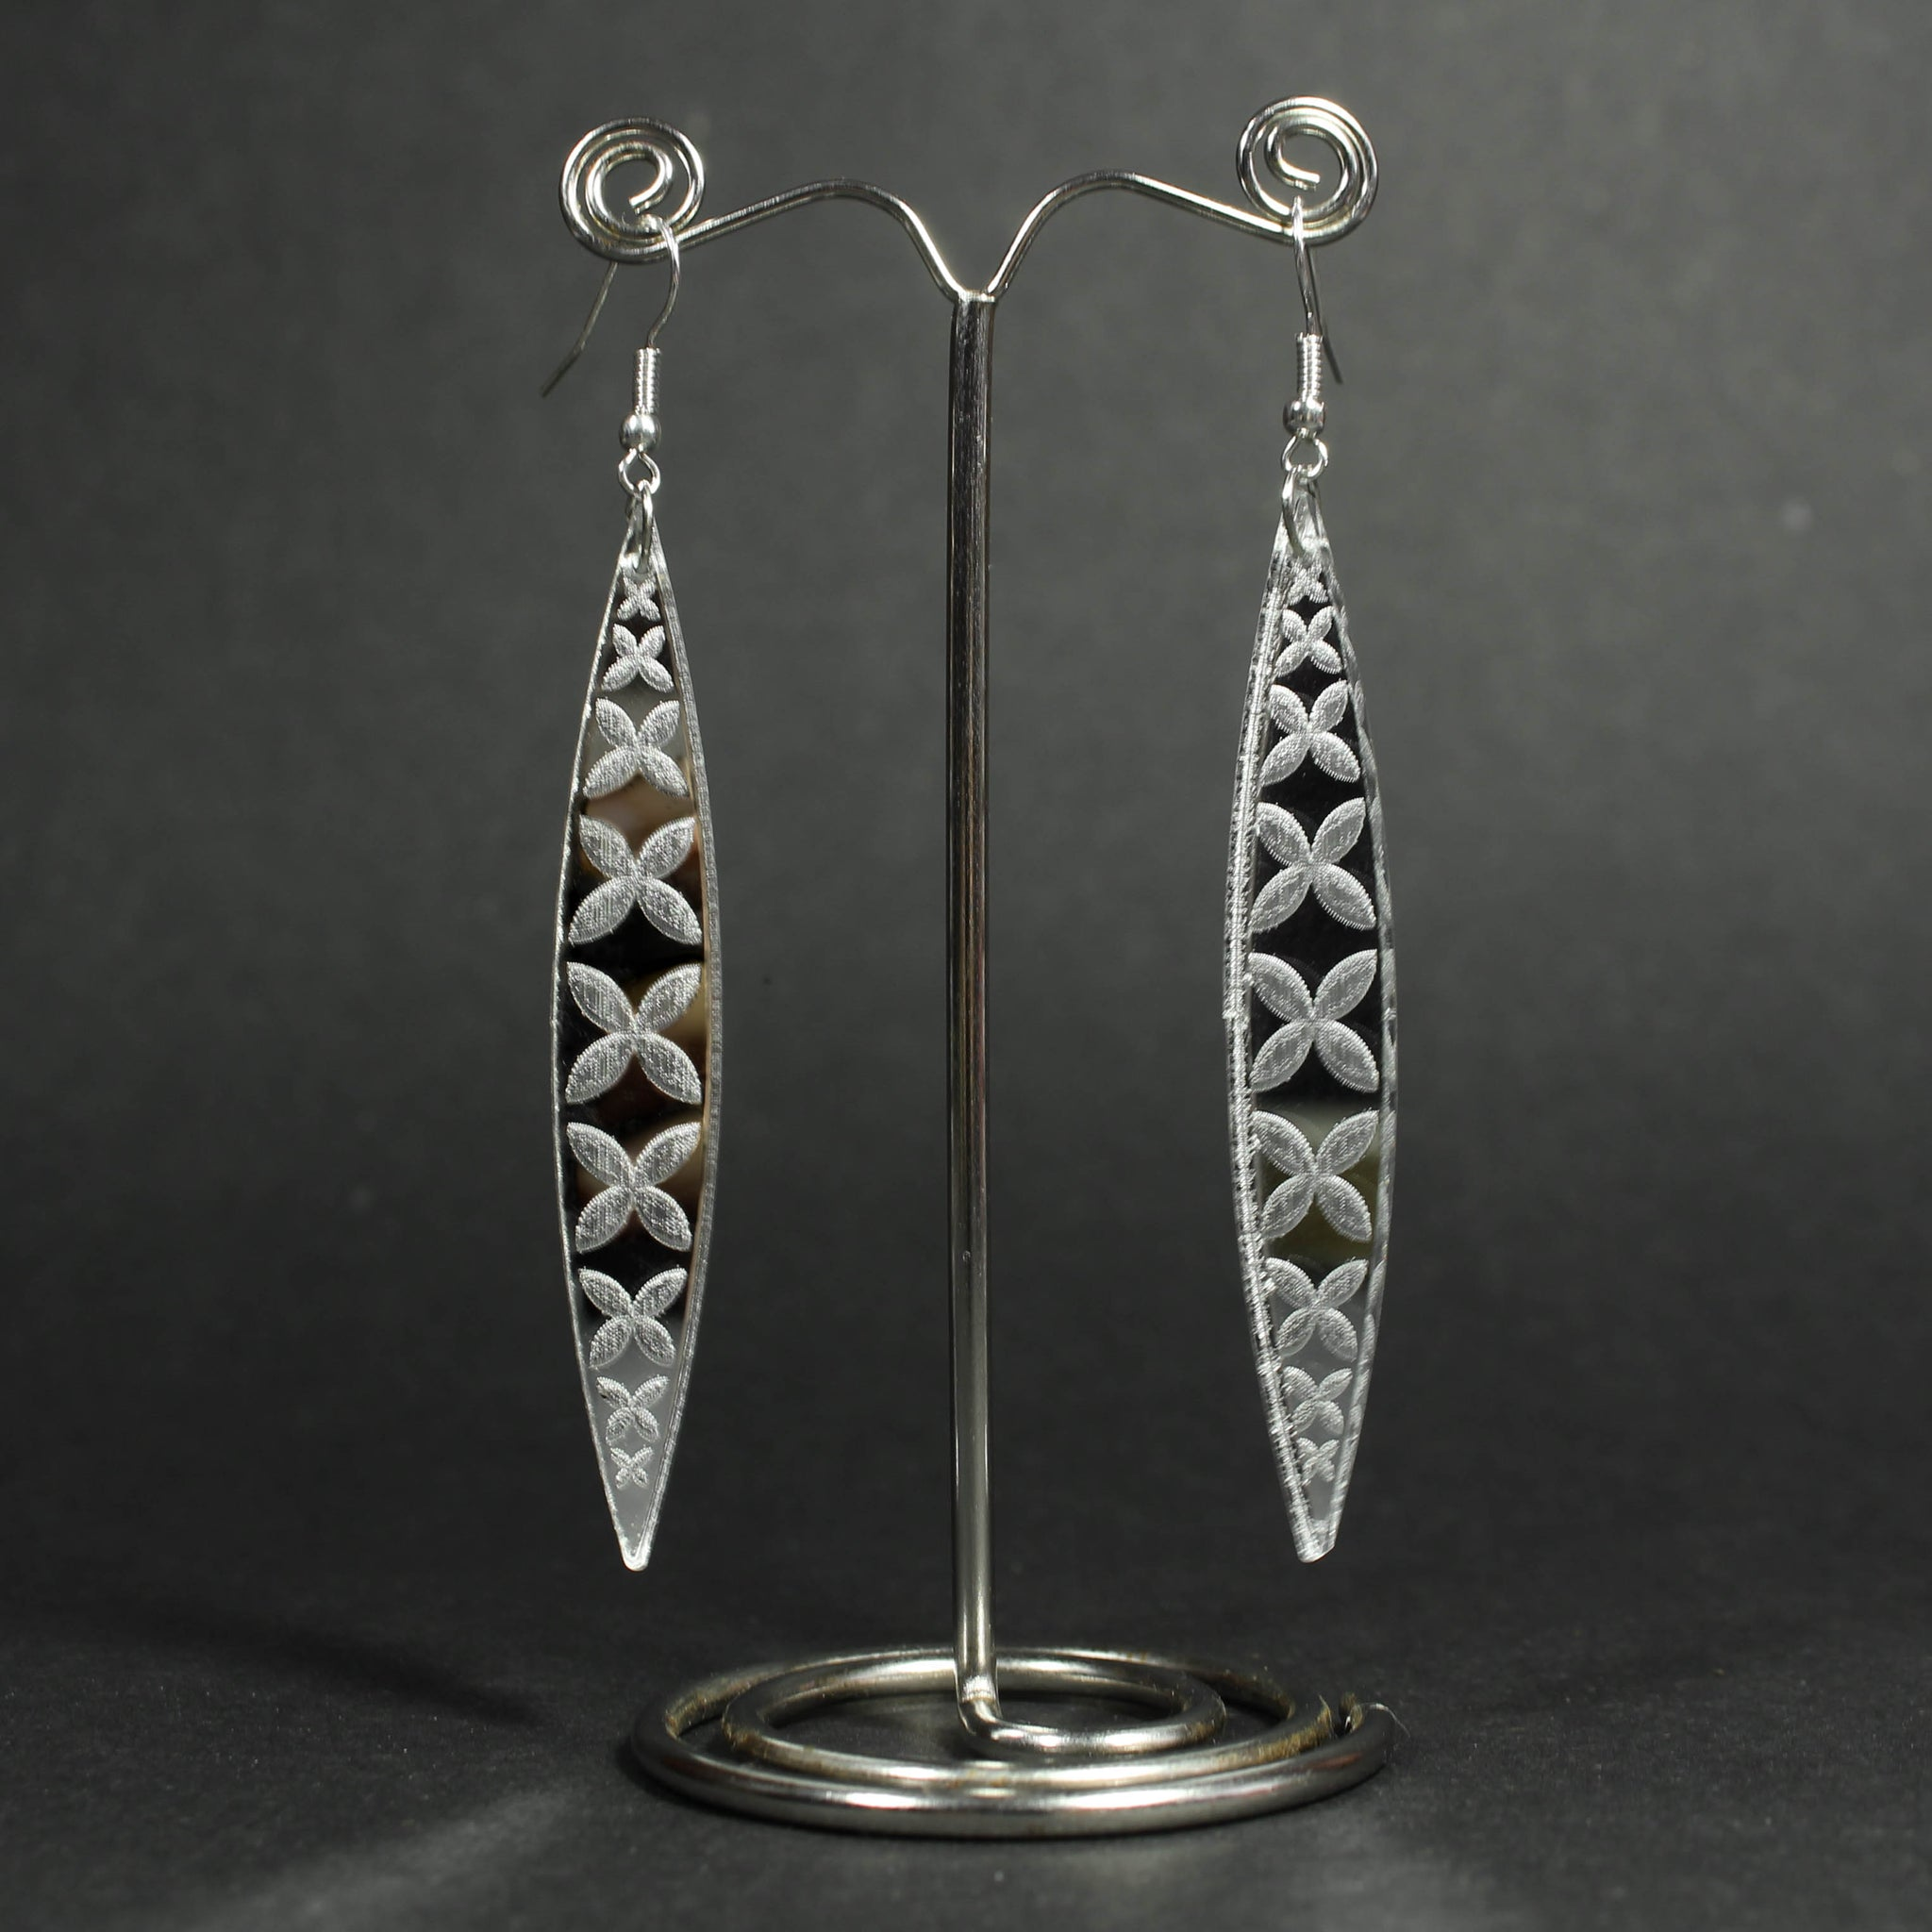 Tapa Flower Reflective Earrings